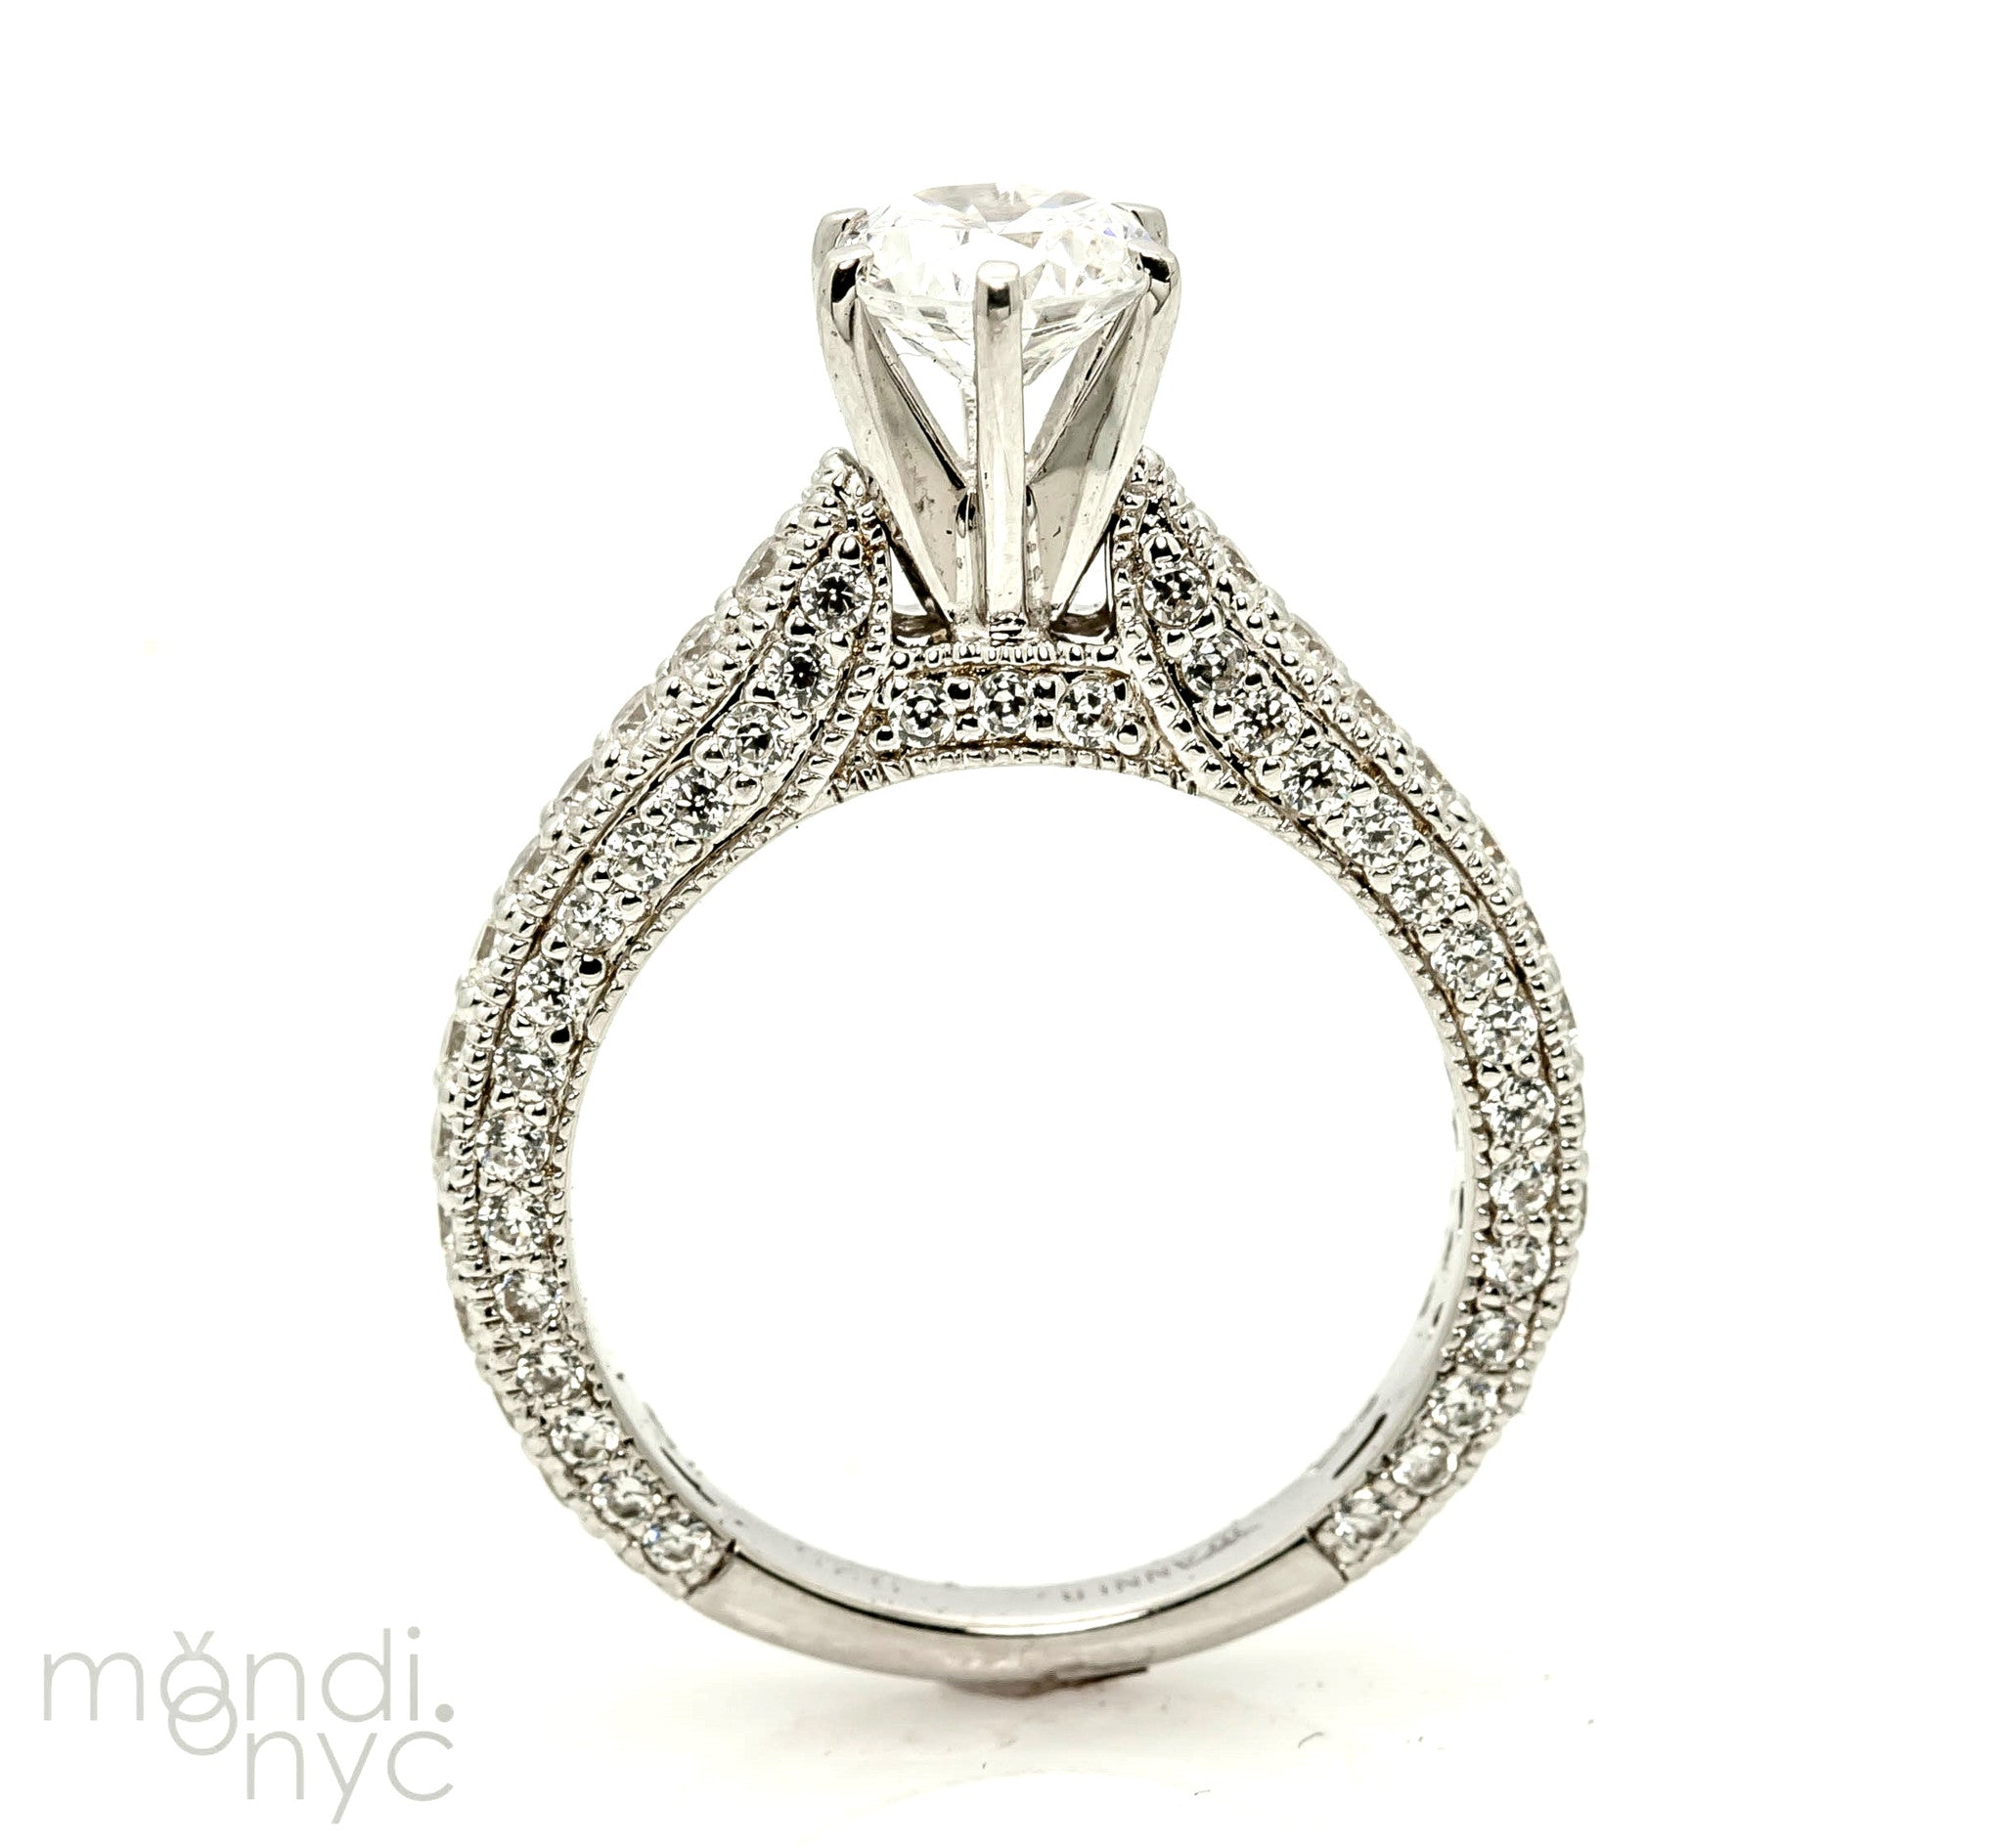 Art Deco Style Moissanite Engagement Ring, Unique 1 Carat Forever Brilliant Moissanite Ring, With 1.07 Carat Of Diamonds, Anniversary Ring - FBY11302